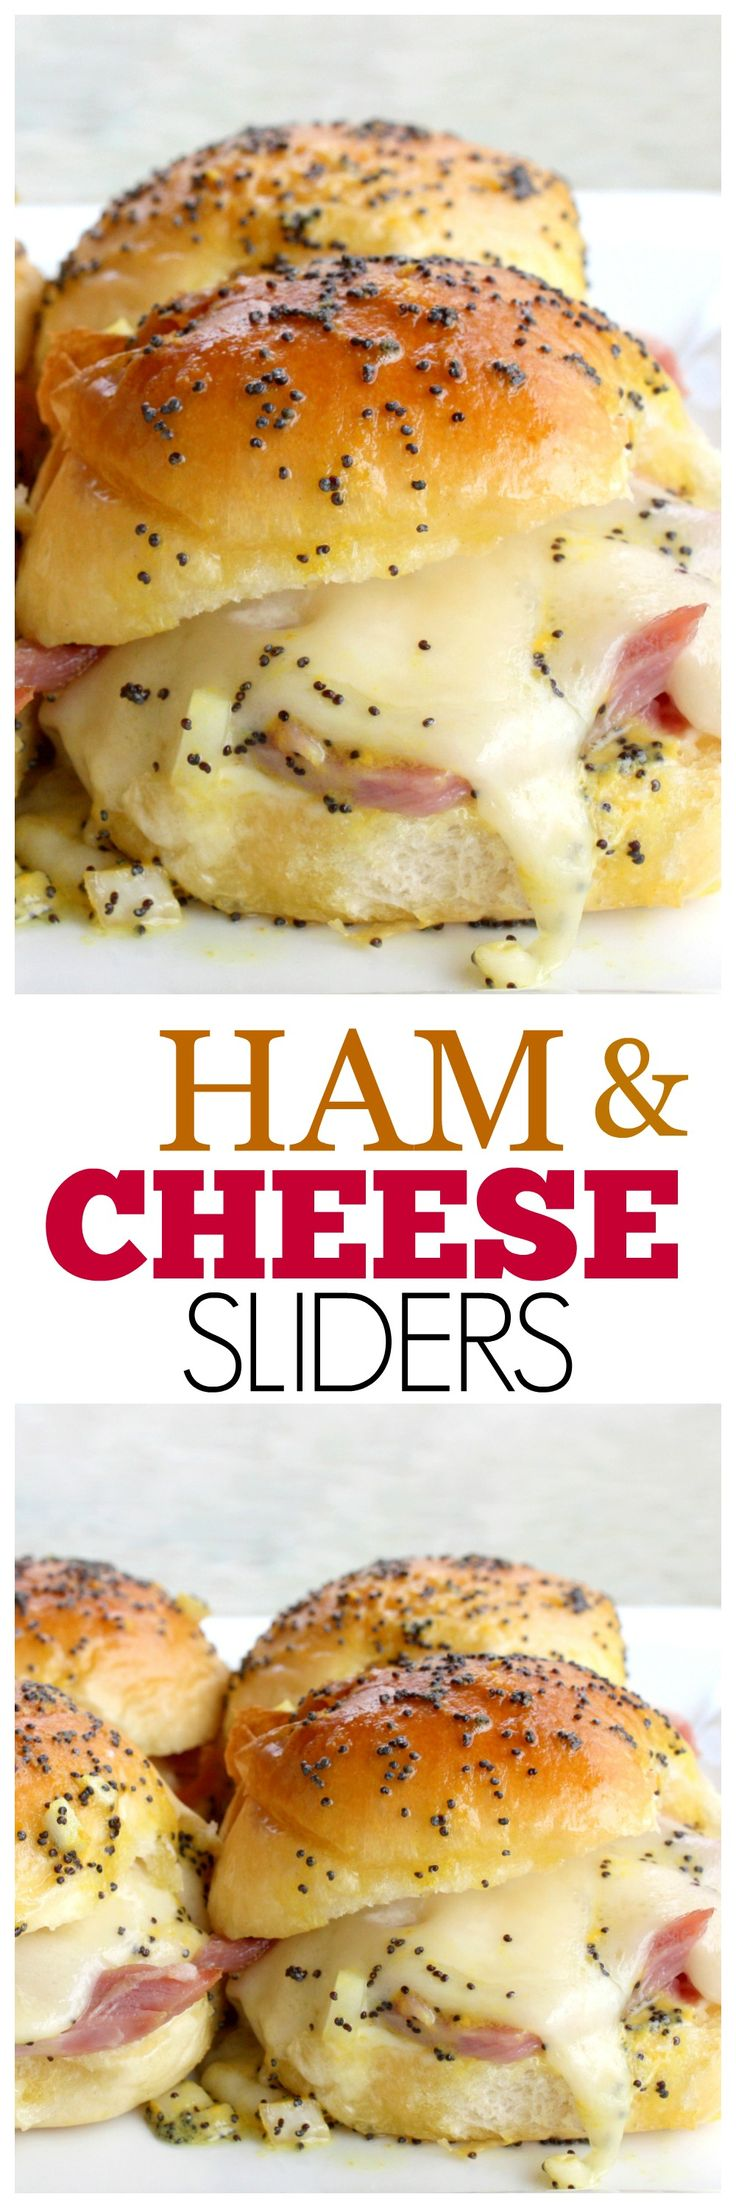 Ham and Cheese Sliders - easy and crowd pleasing sandwiches. {The Girl Who Ate Everything}